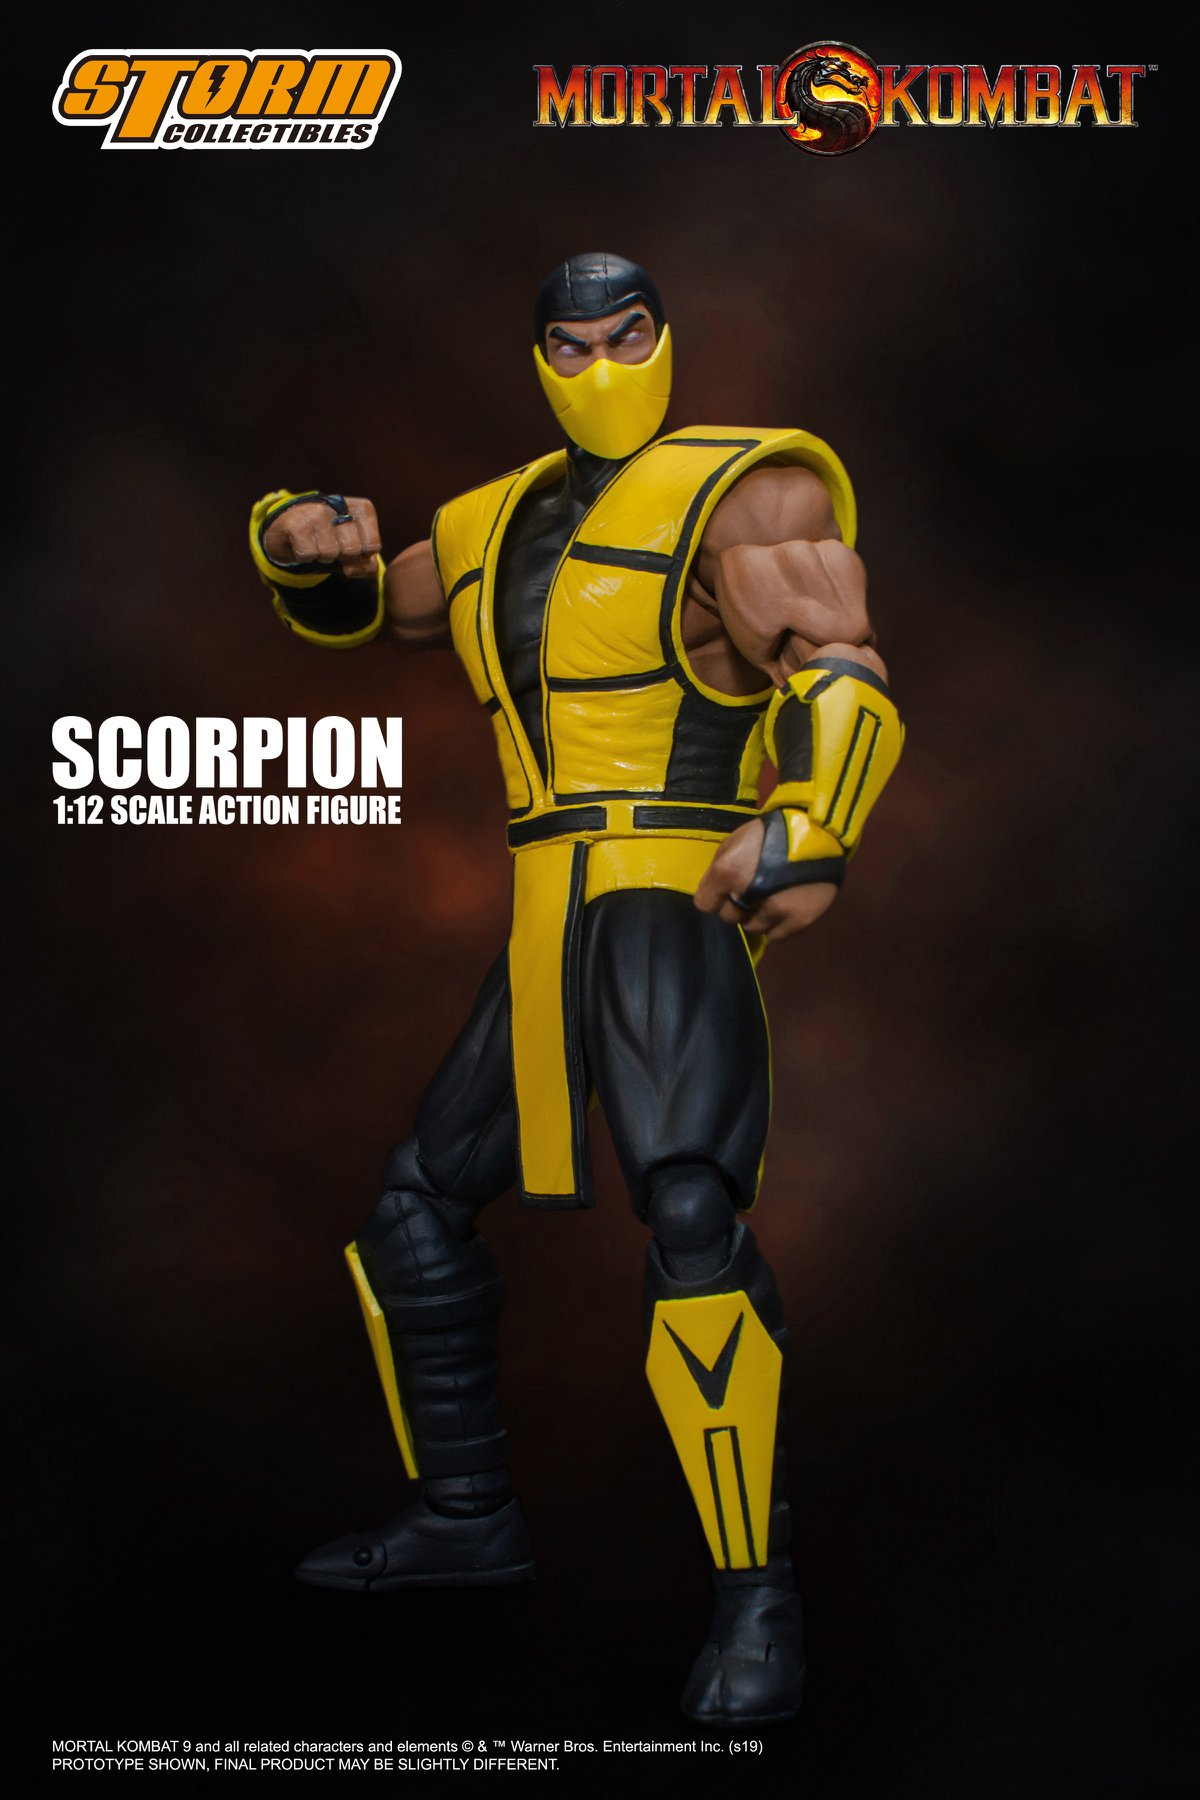 Mortal Kombat 3 - Scorpion 1:12 Action Figure